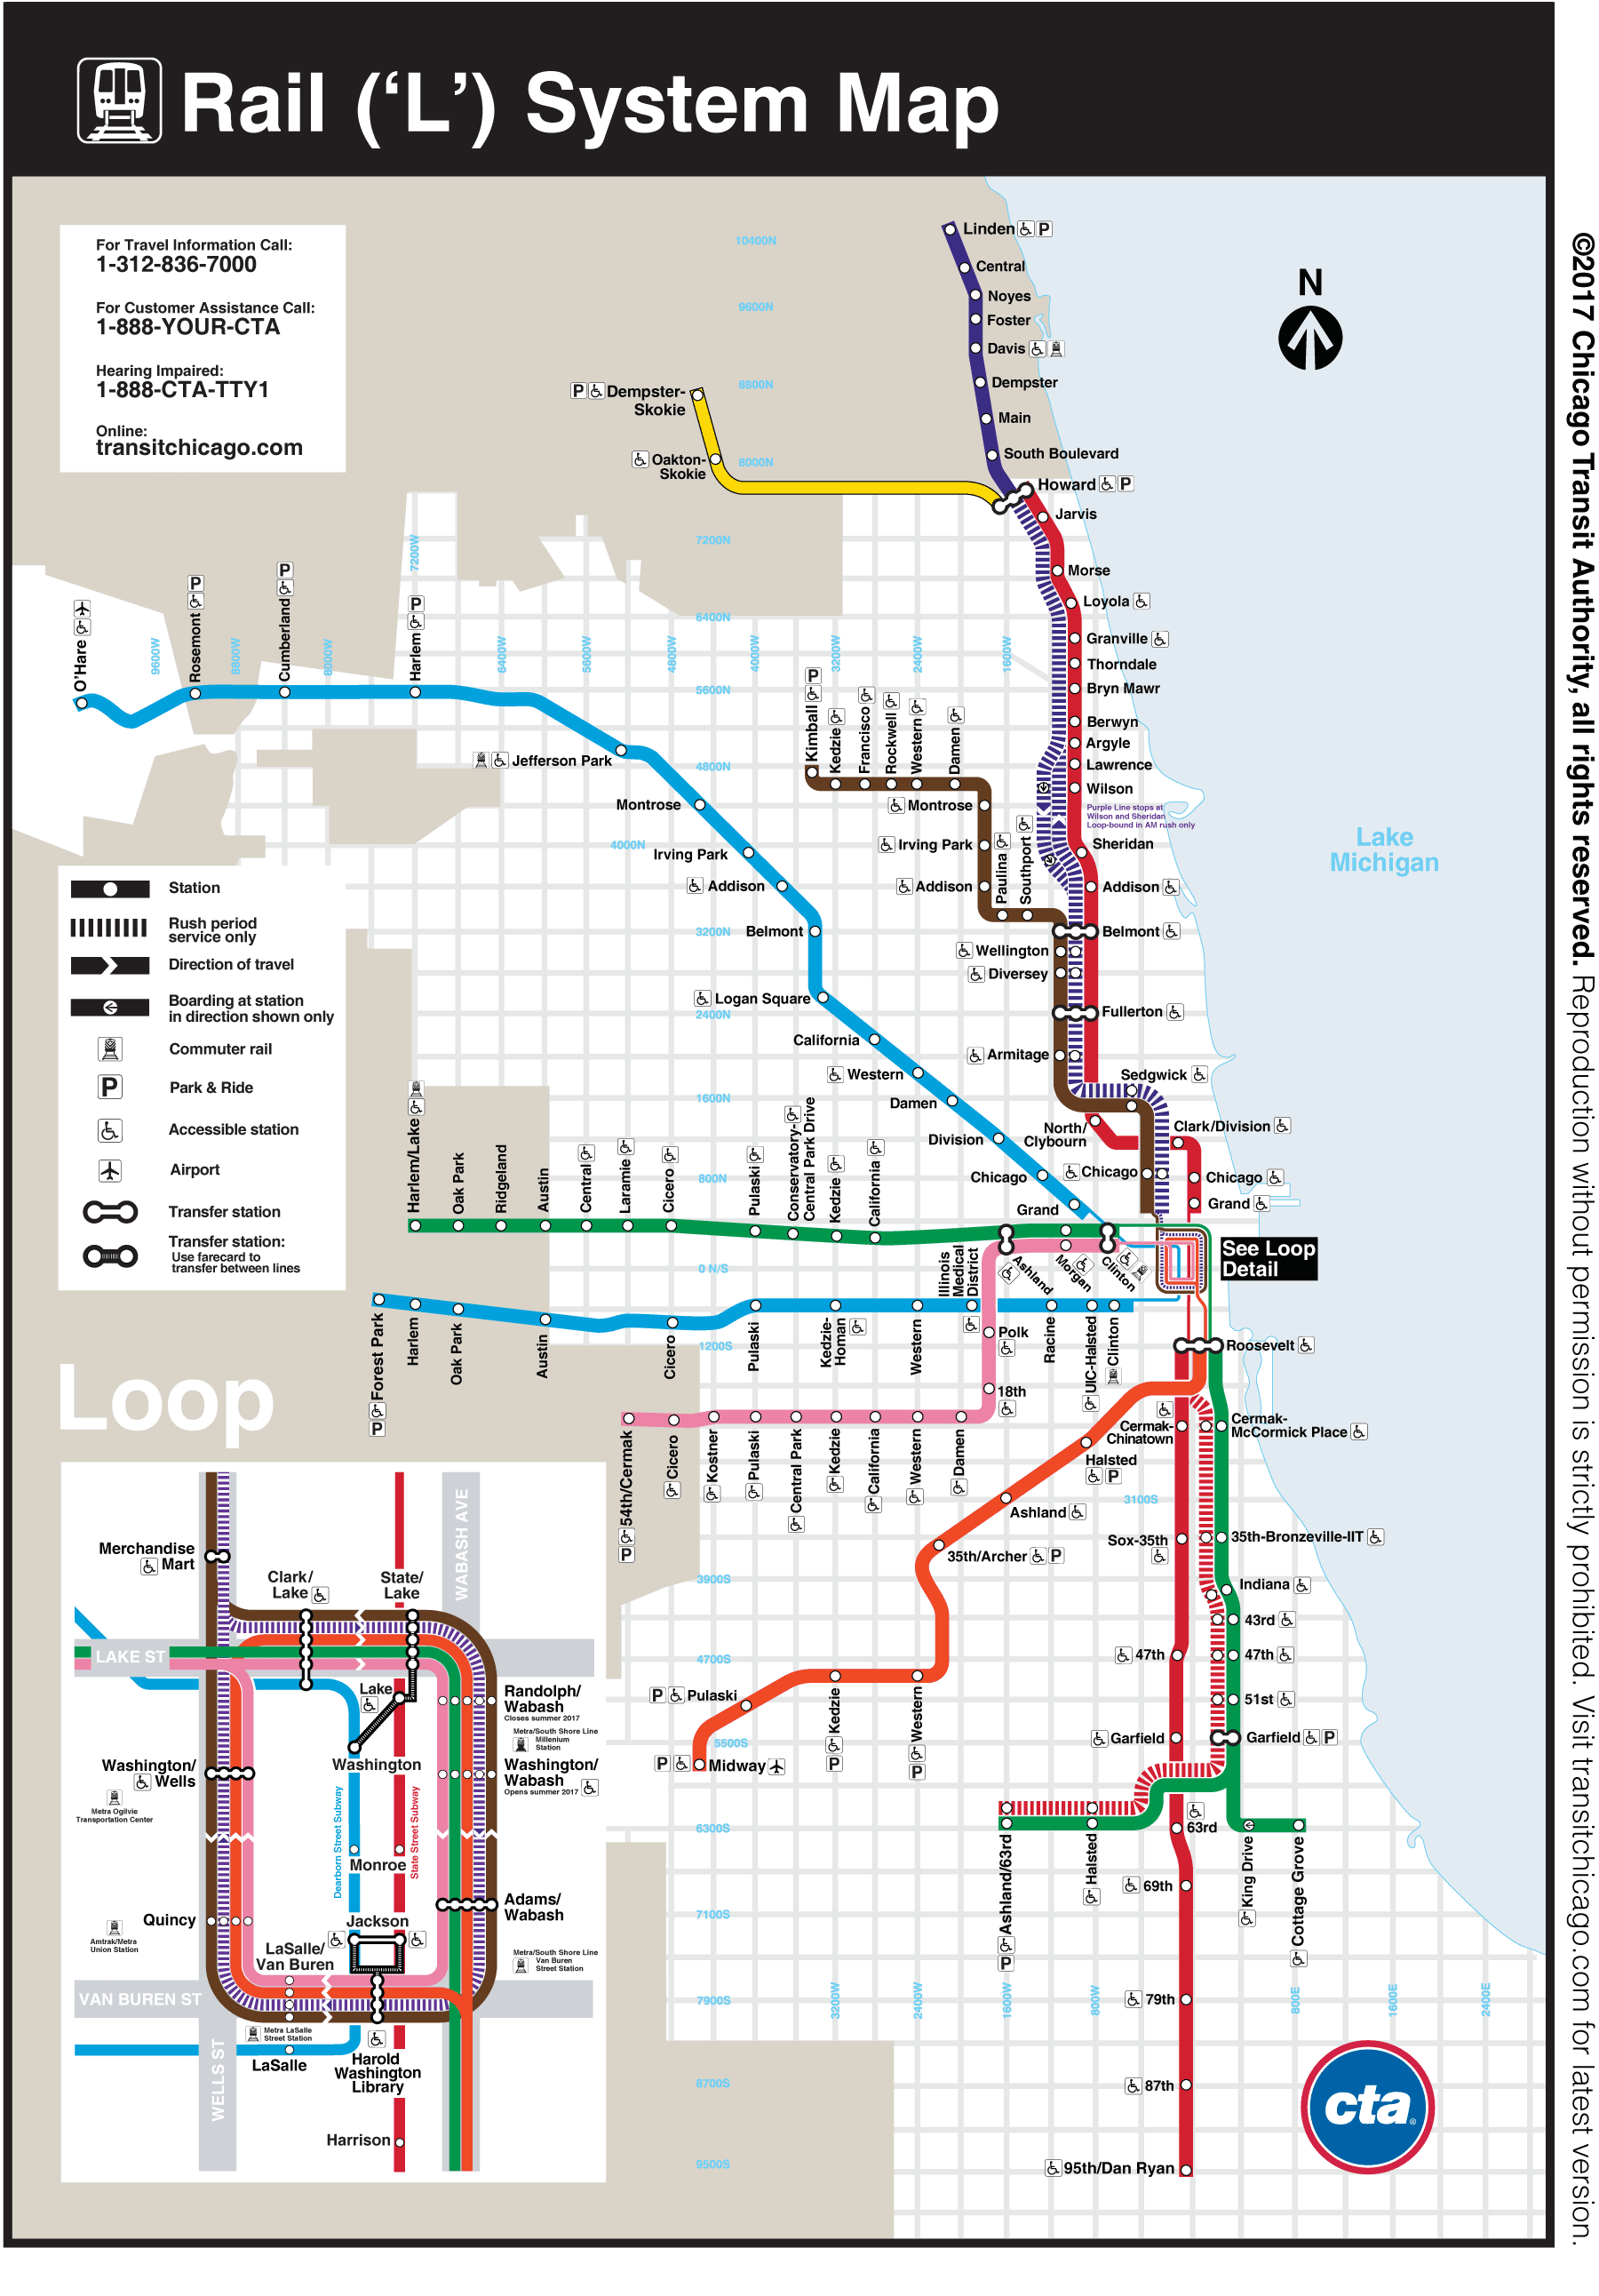 Chicago Trains Map Pin by Karen McCartney on Directions/